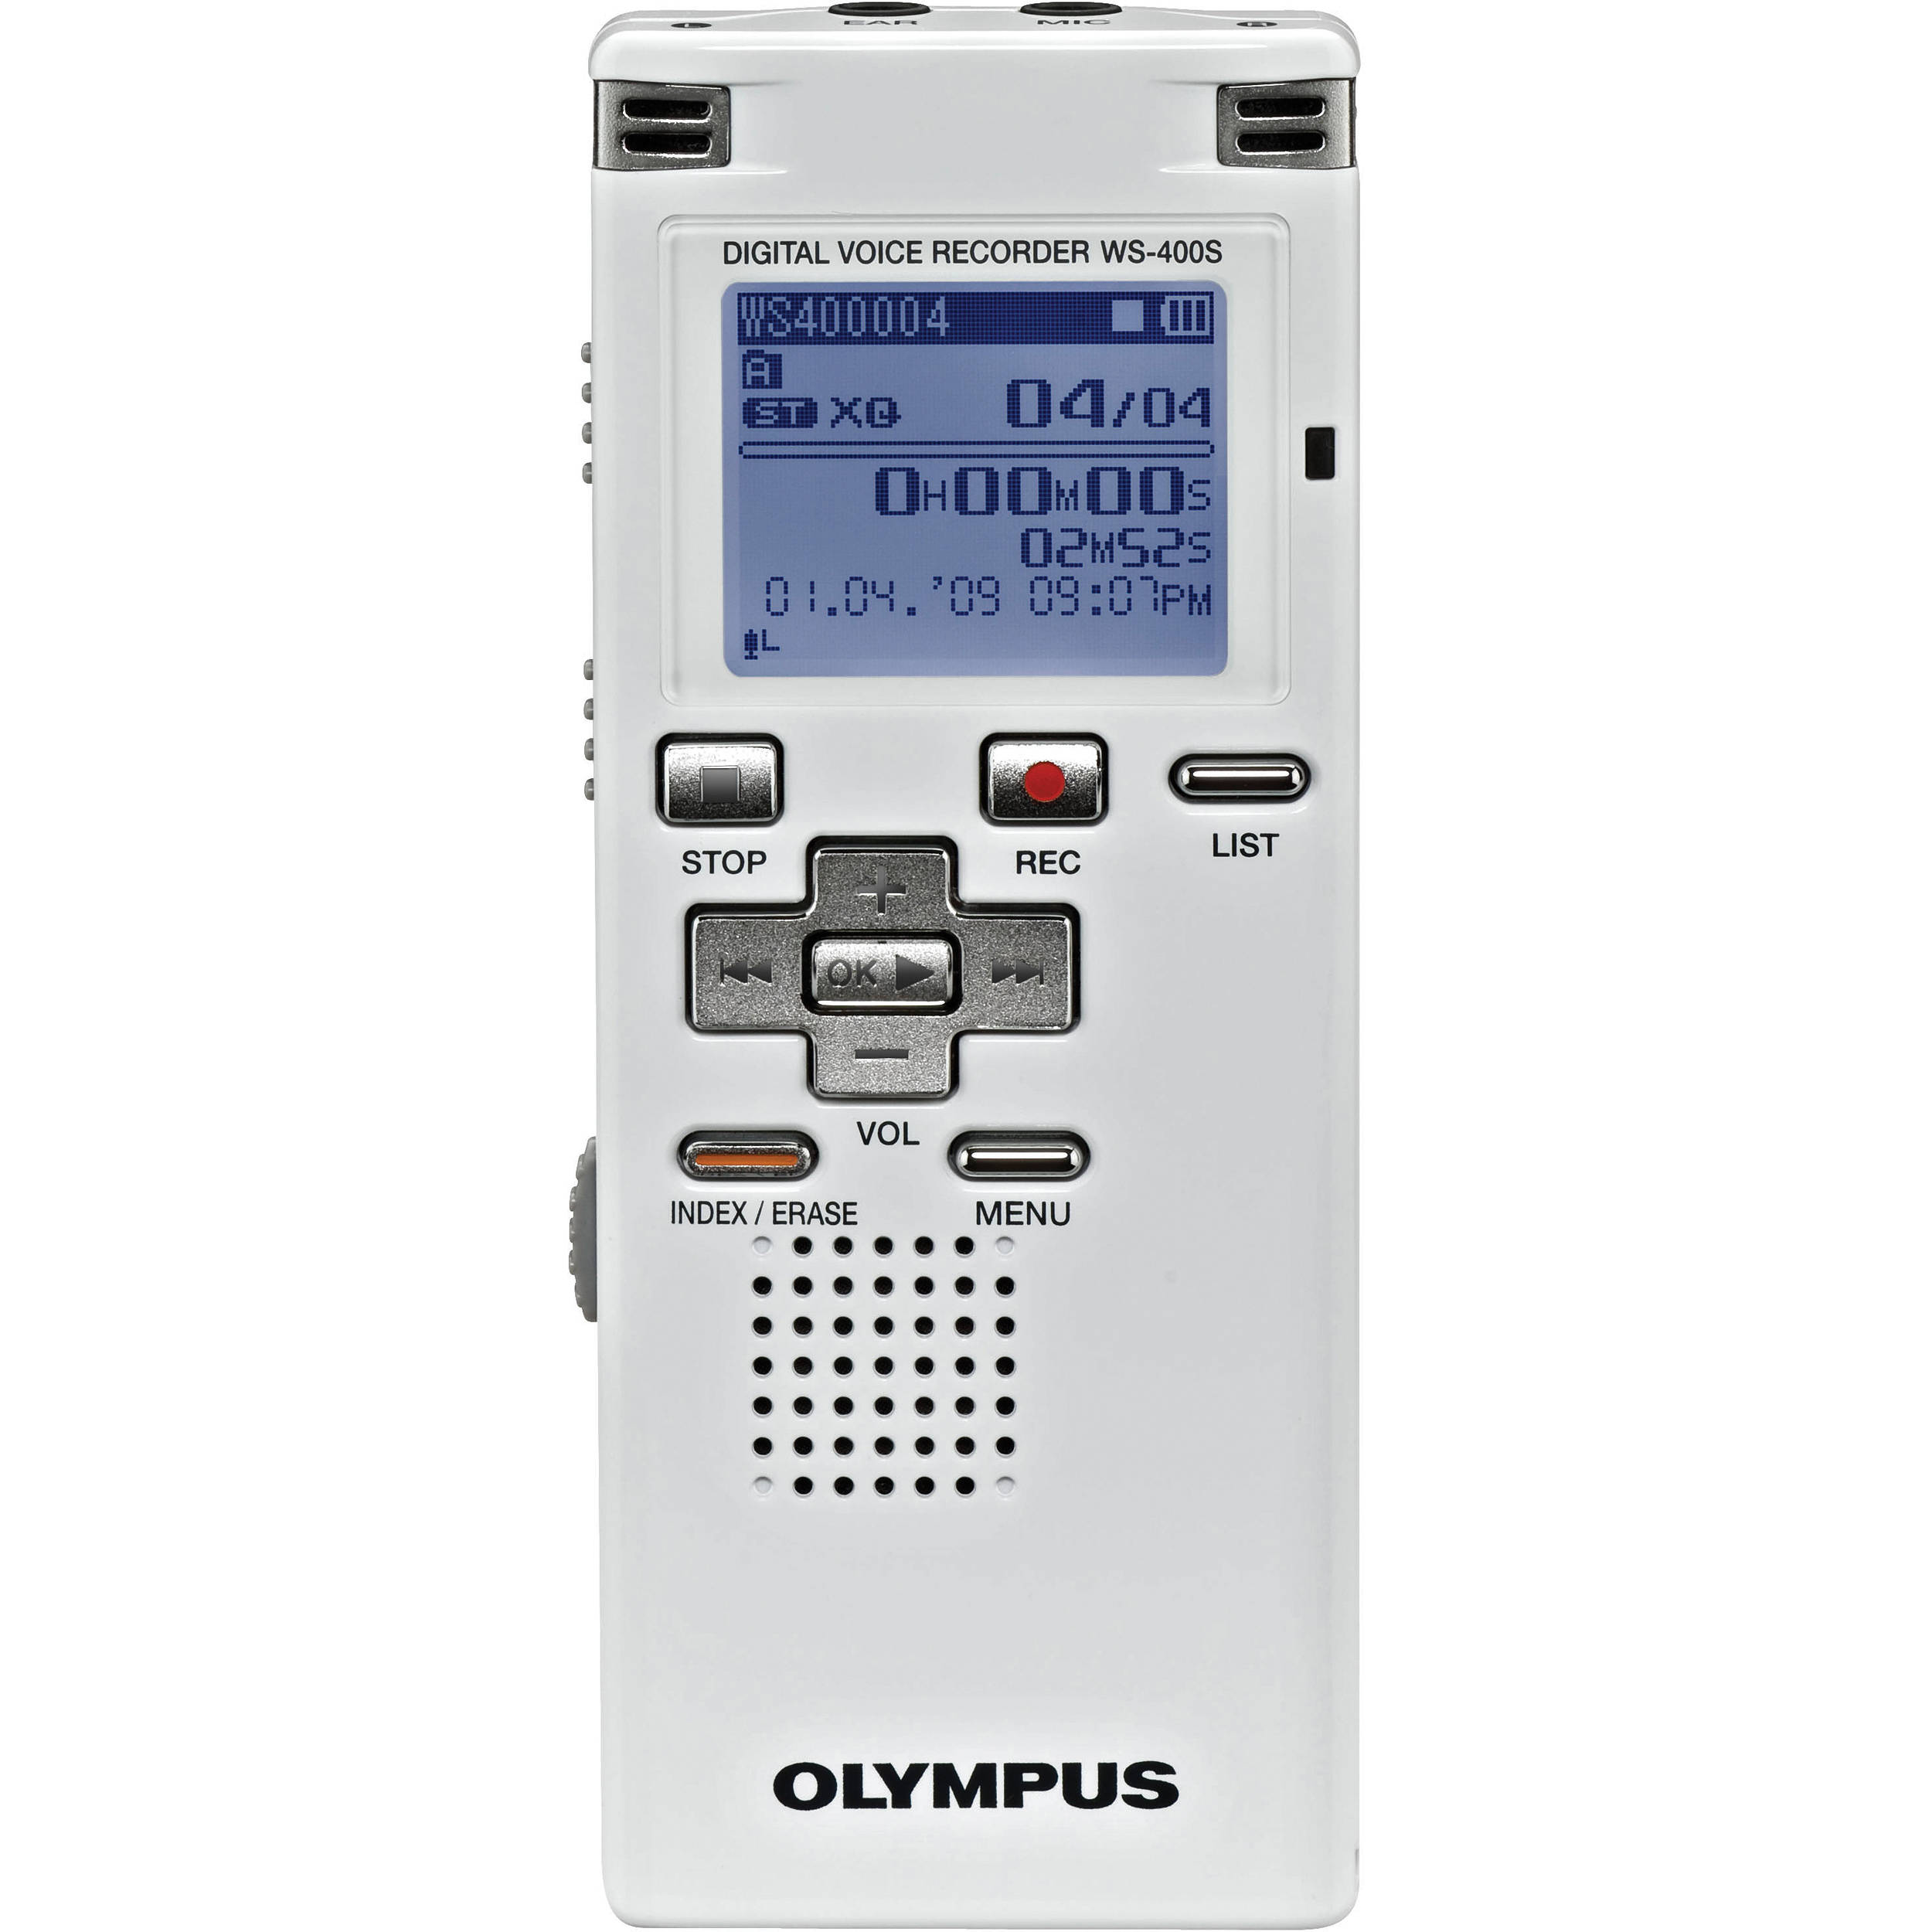 olympus ws 400s dns digital voice recorder kit 142036 b h photo rh bhphotovideo com olympus digital voice recorder ws-400s manual